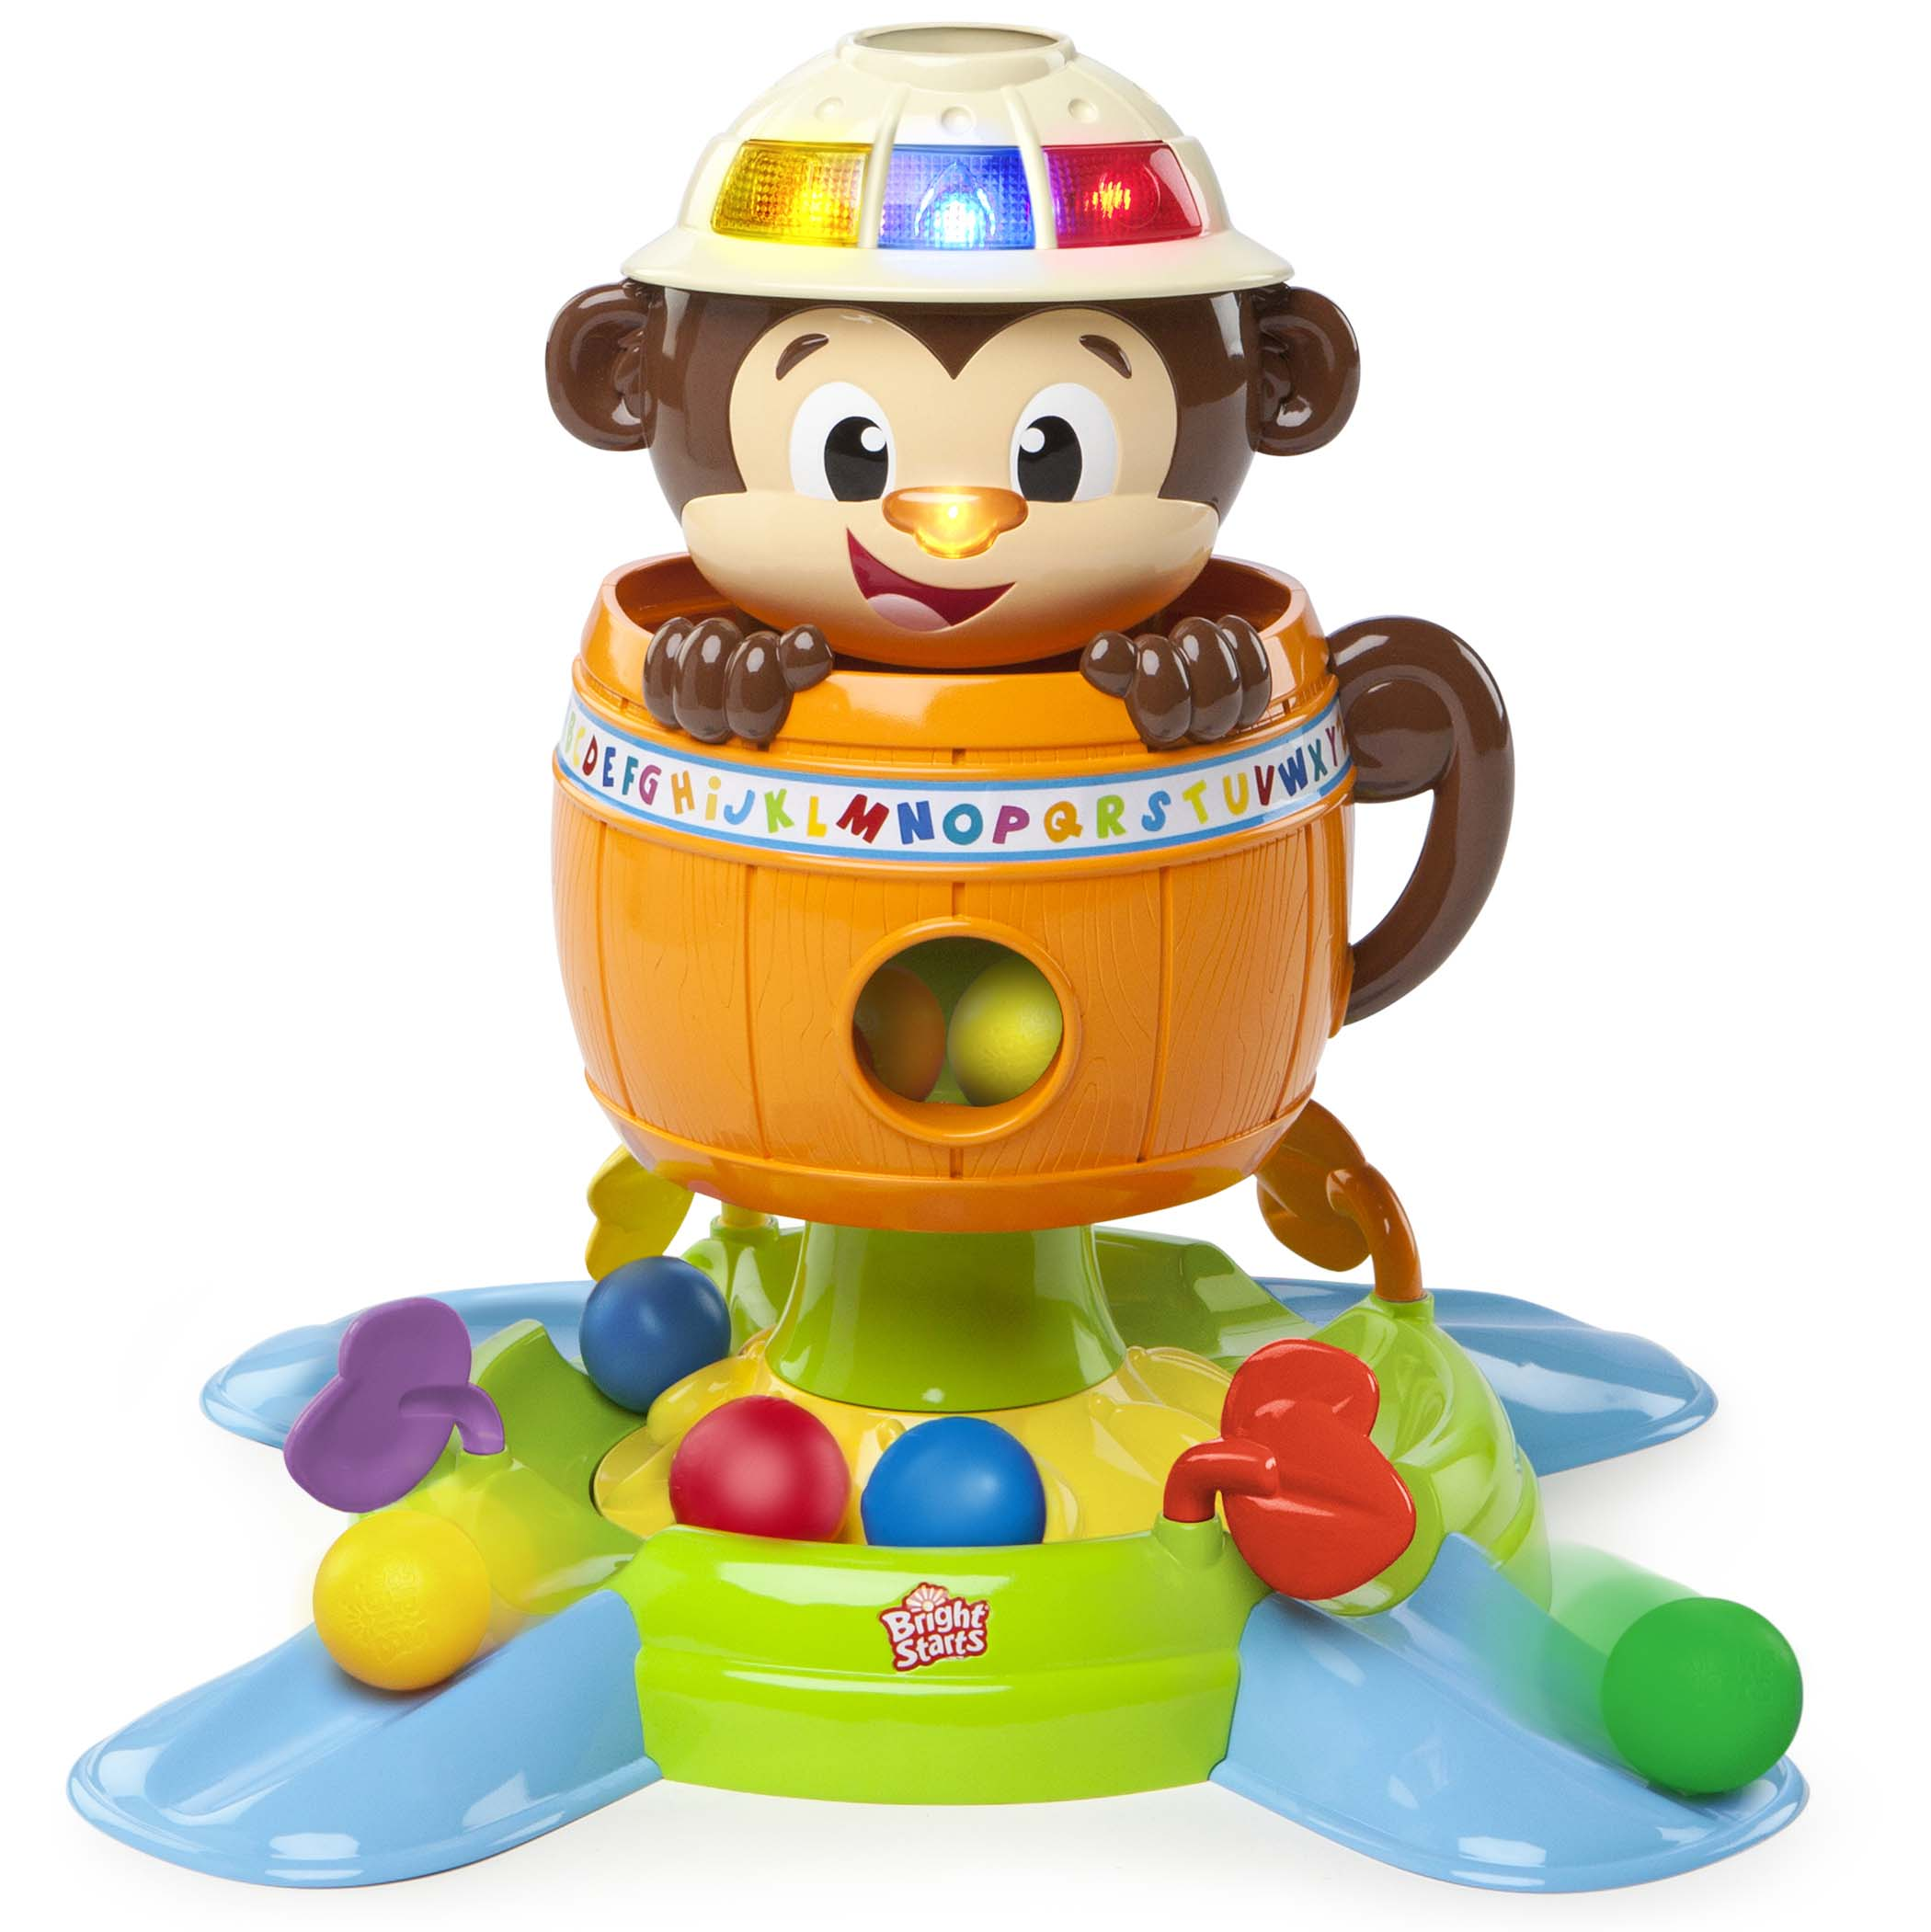 Clever Toys 3 Month Babies R Us Toys 3 Month Amazon Cs Coughs Toys Month Baby Styles At Life Month Baby Cough Remedies baby Toys For 3 Month Old